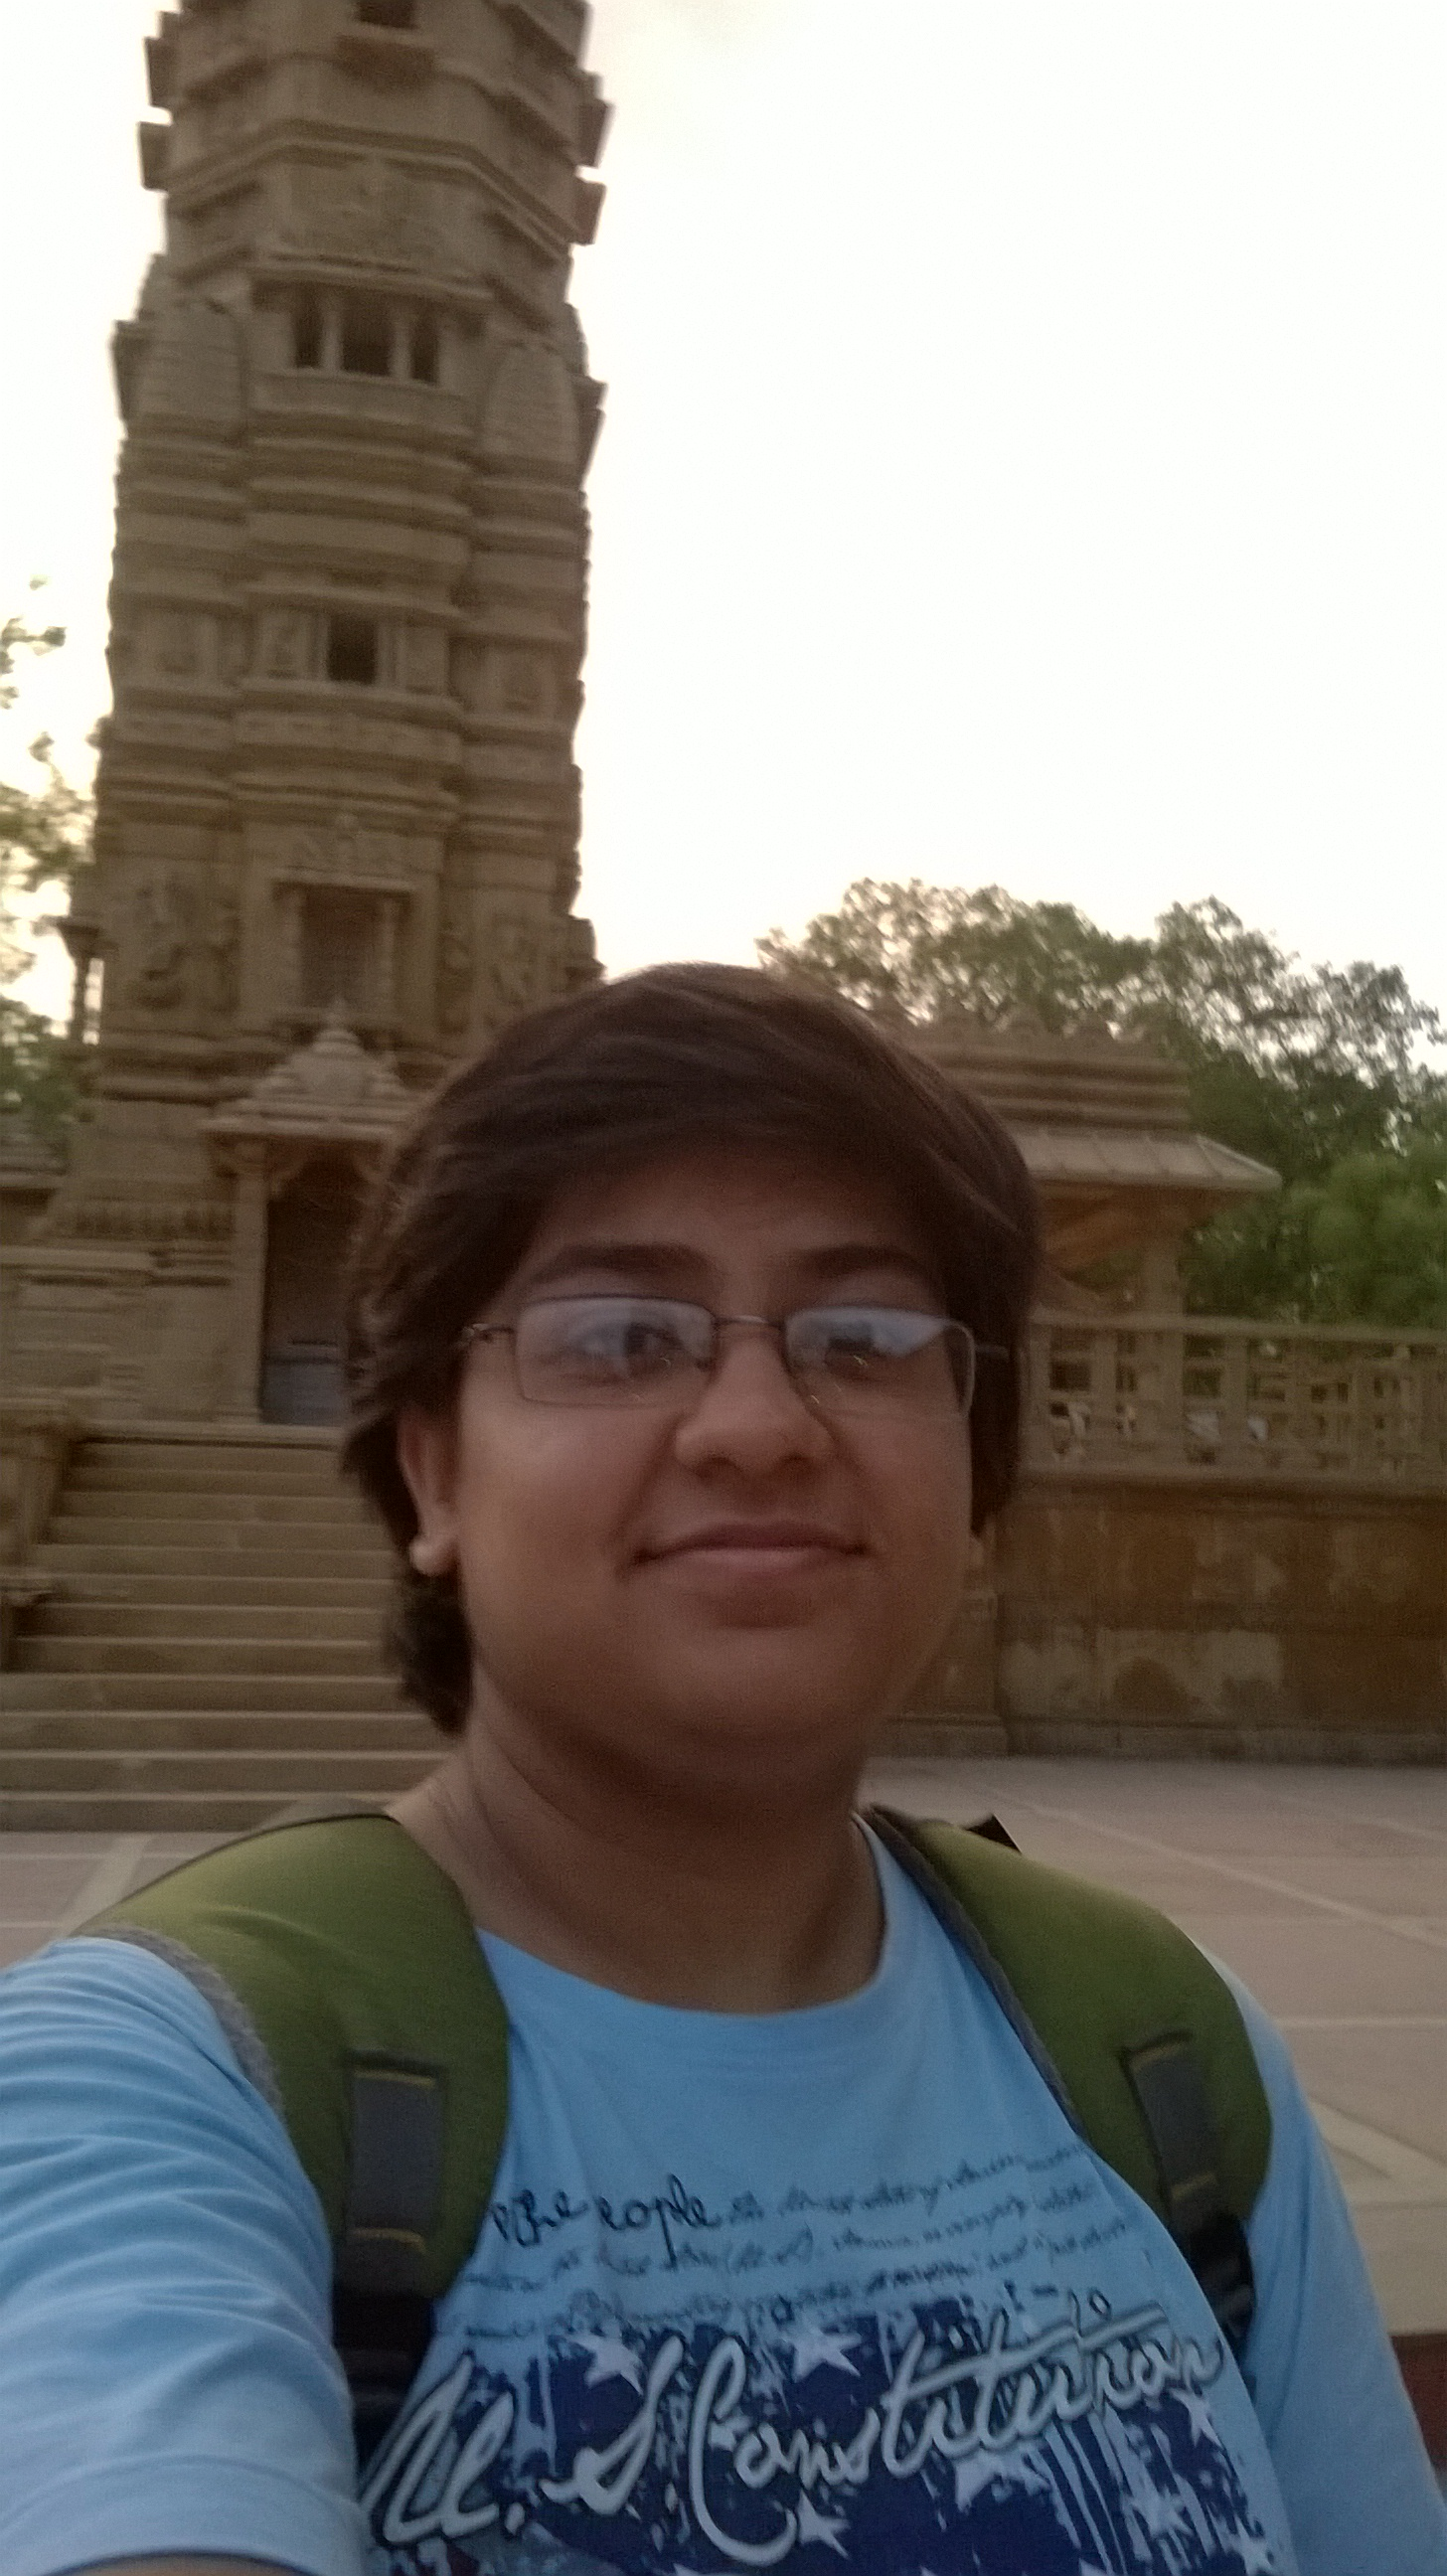 """To complete the task as the Campus Ambassador I decided to visit the Hathisingh na Mandir. Not due to any fancy reason but because it was proximity to my house and was ideal place to visit for getting break from studies. If I was not assinged this task or was not bound with exams, I would have sound like """"Mandir bi koi gumne ki jaga h? (Is temple a place to visit)"""", even without reading the fab history of the place. But after my visit I am sure that i will visit the place again and again. This Prominent Jain temple reflects the beautiful architecture by the artisans of 19th century. It has been named after its founder Seth Hathee Singh, a prosperous Jain merchant. With the help of Google I found it was build in dedication of 15th Jain Trithanakara named Dharmnath. The temple has a cemented courtyard that is enclosed by a row of cloisters, which contains 52 holy places. Each of the shrines consists of an image of a Tirthankara. I got to know that, the temple contains 238 stone images, 83 metal images and 21 yantras. Hats off to artisans and their work. The rain shower after the visit made my evening. I would kindheartedly suggest all ahmedavadies to pay a visit once."""